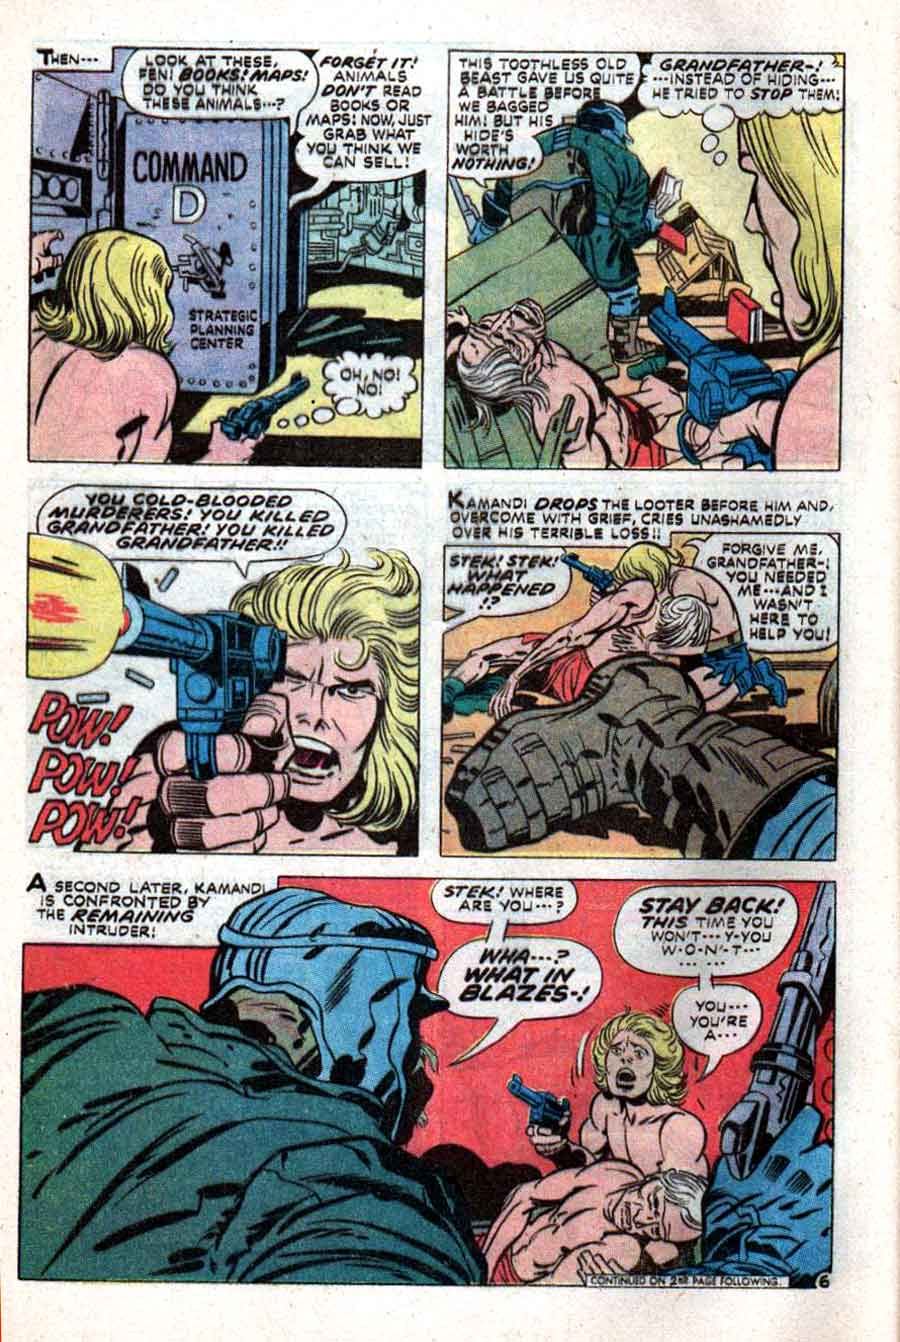 Kamandi v1 #1 dc 1970s bronze age comic book page art by Jack Kirby, Mike Royer